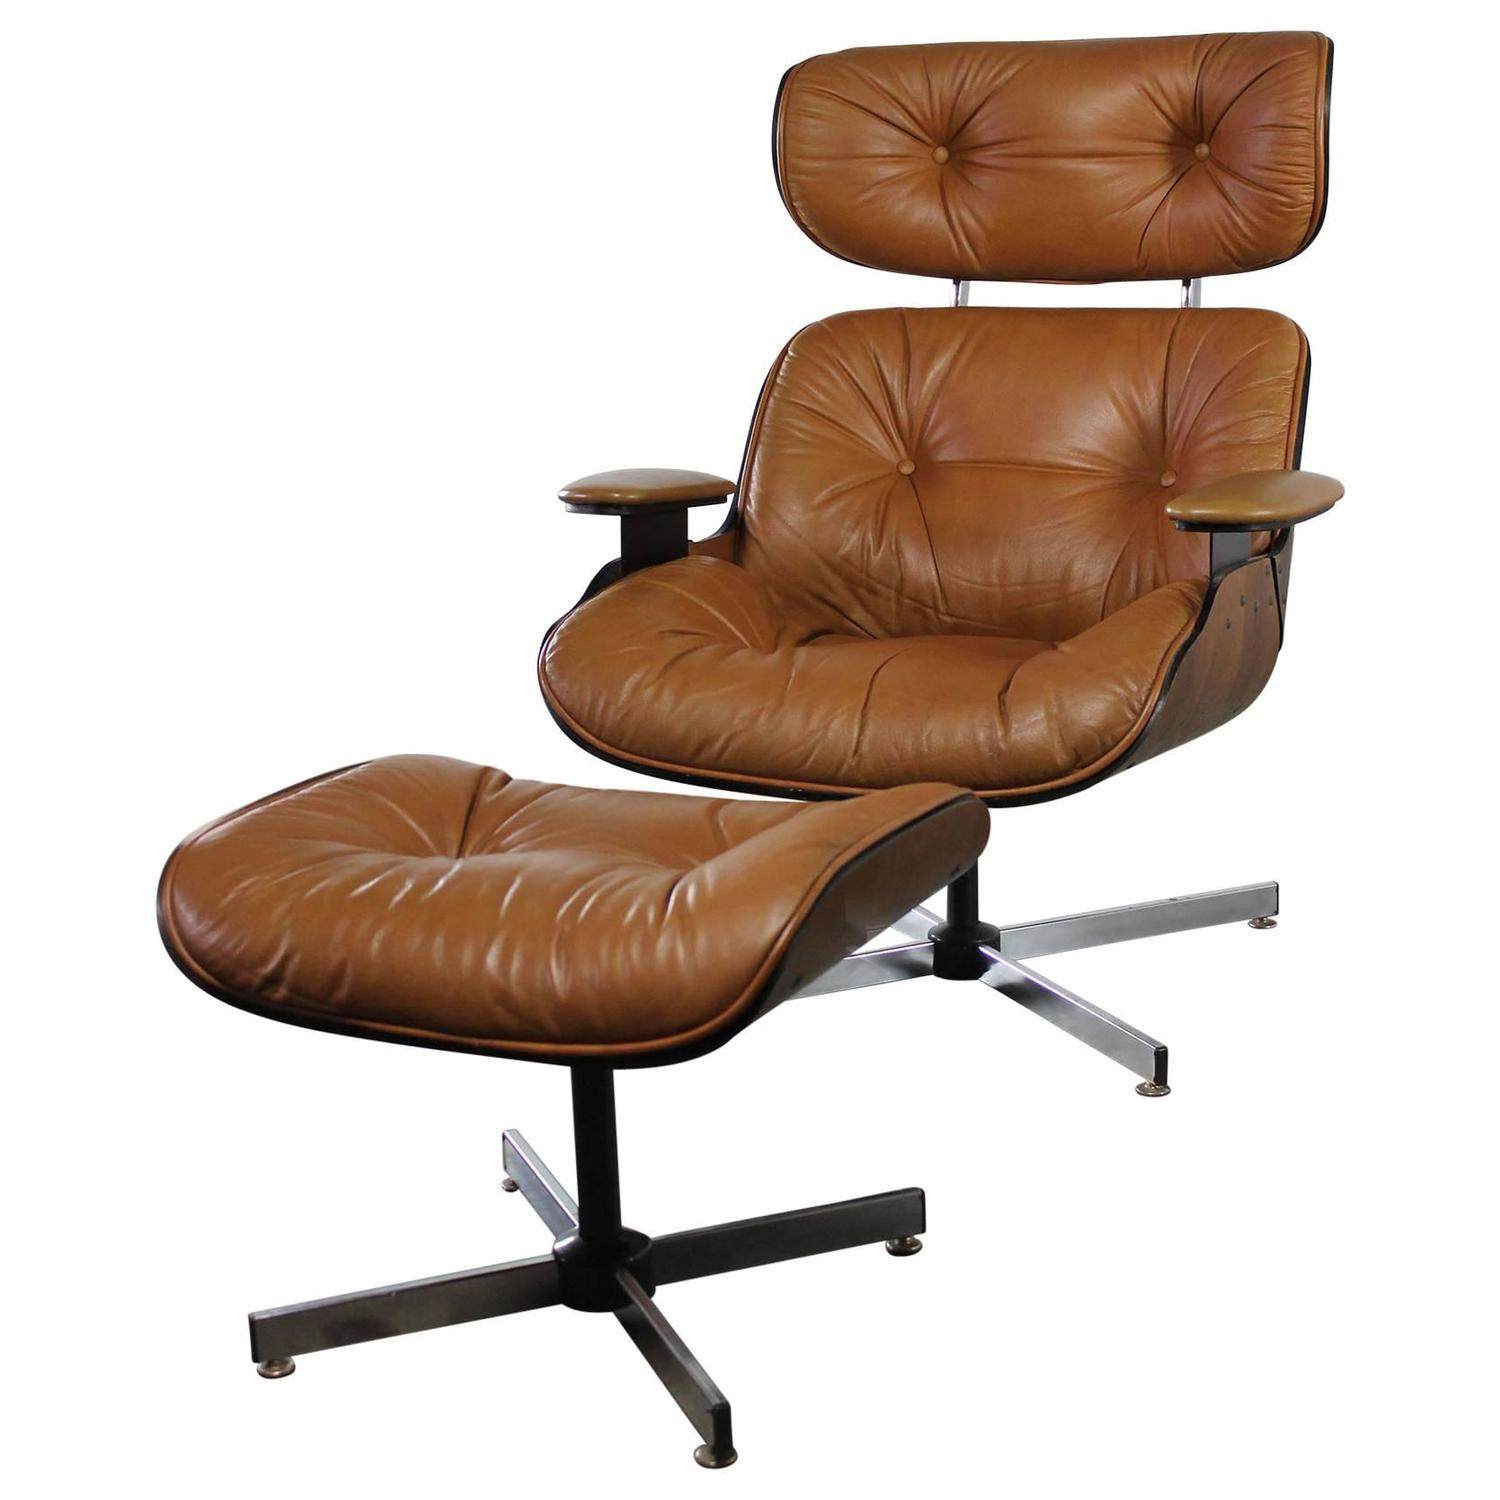 Mid Century Chair And Ottoman: Mid-Century Modern Plycraft Eames-Style Lounge Chair And